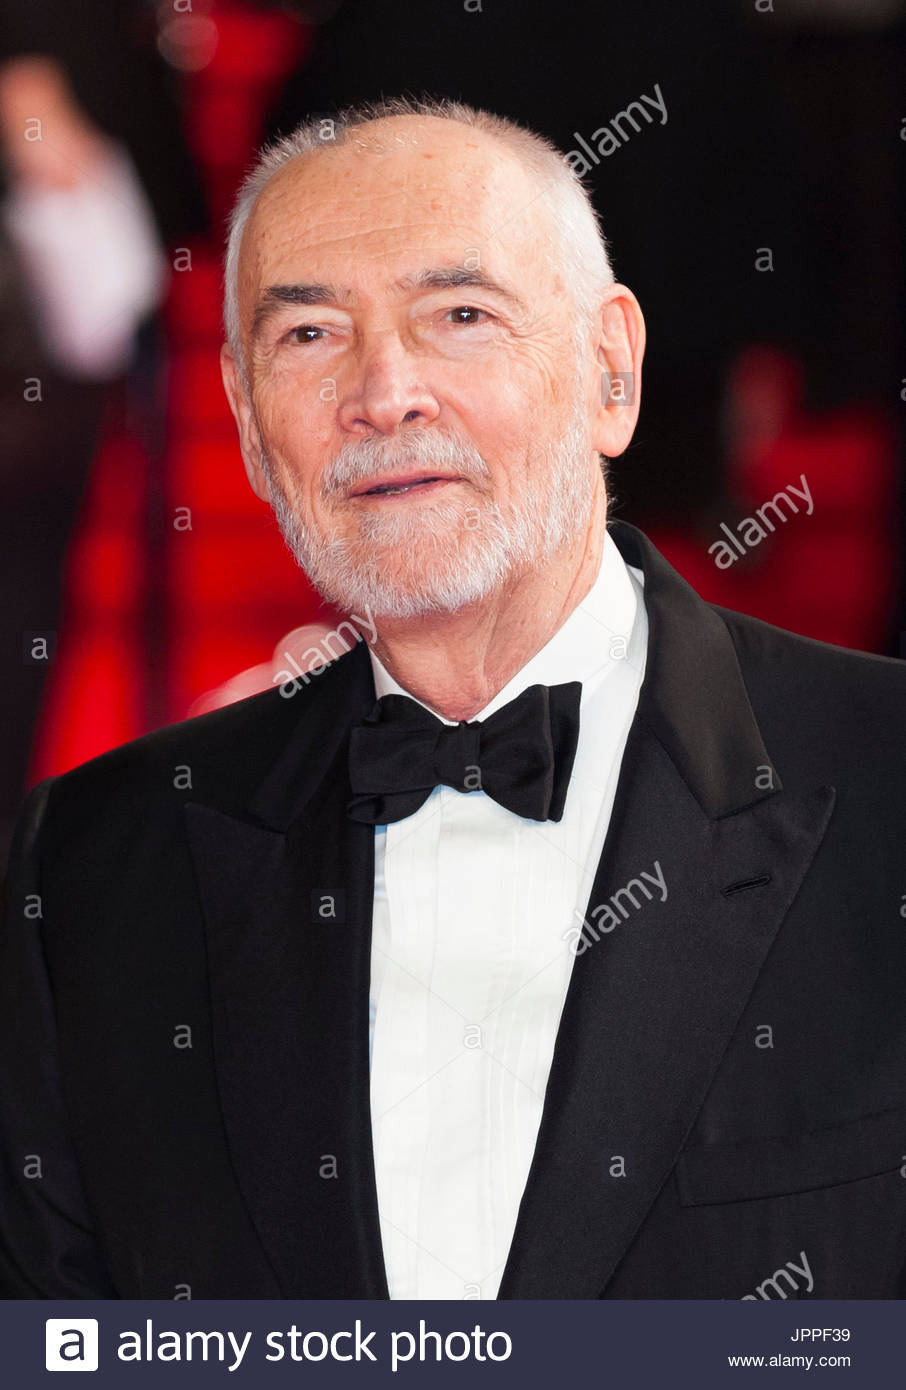 Michael G Wilson  Arrivals at the World premiere of James Bond Stock     Michael G Wilson  Arrivals at the World premiere of James Bond  Spectre  at  the Royal Albert Hall in London